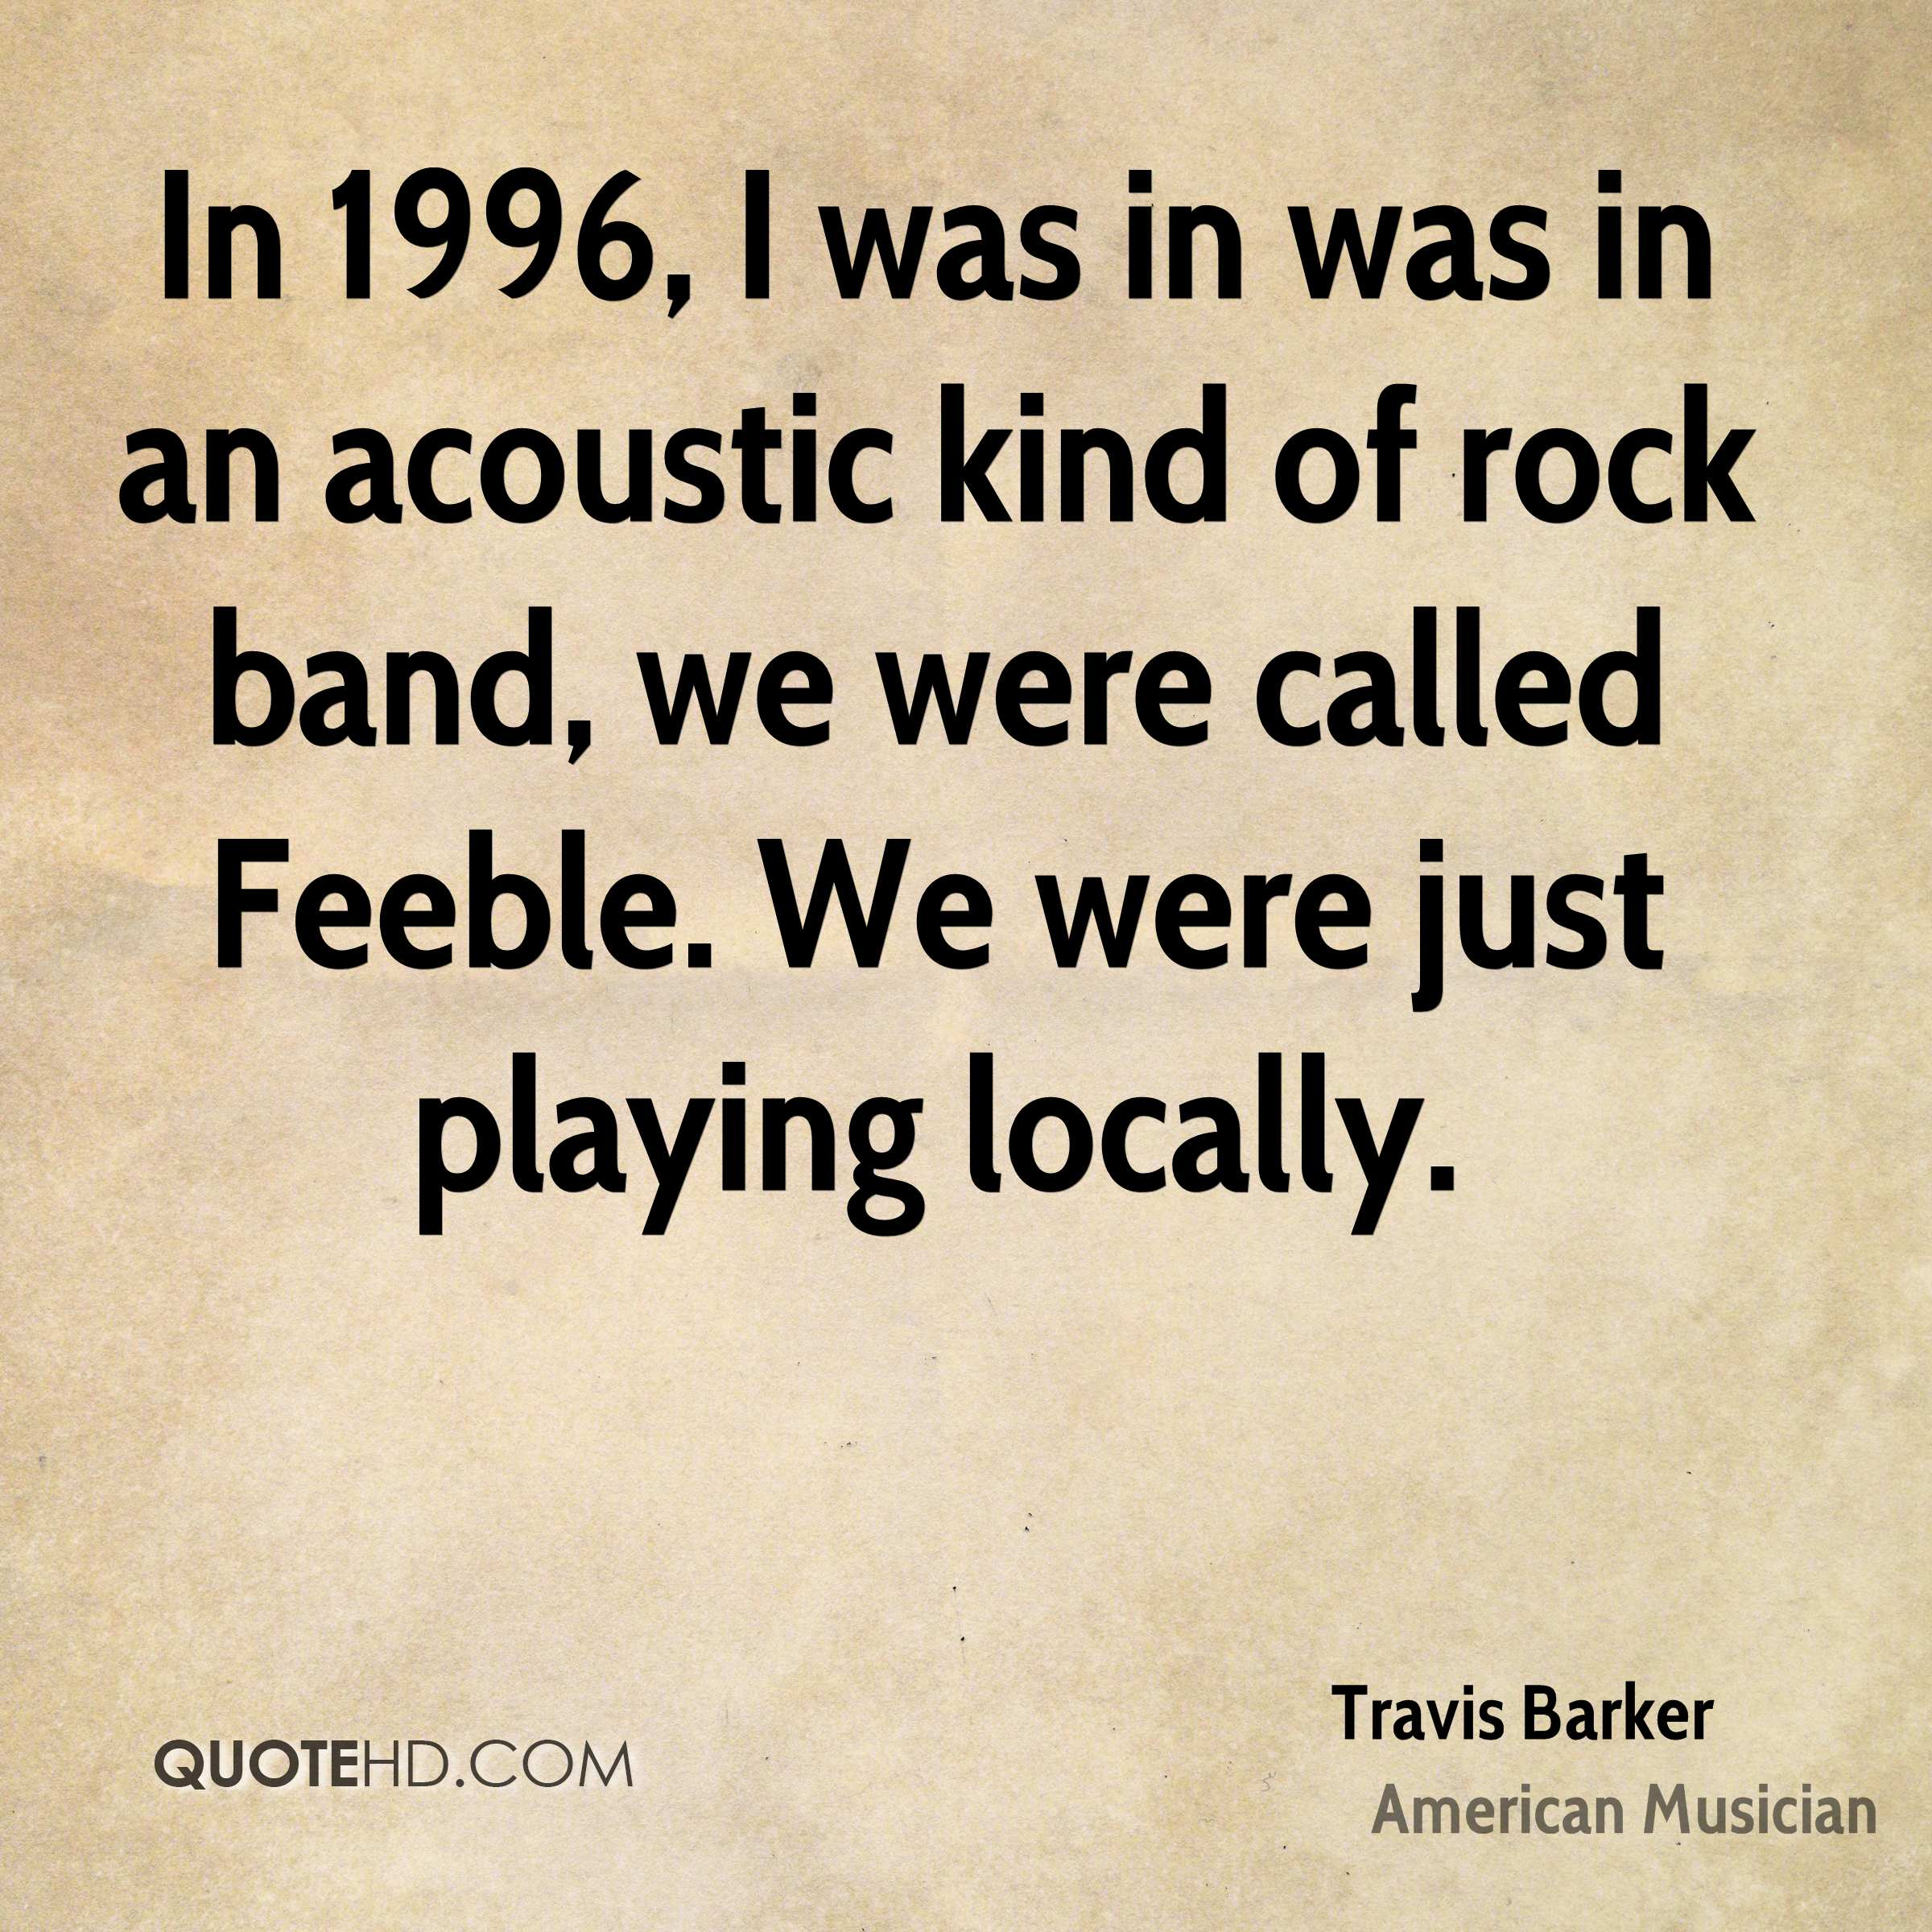 In 1996, I was in was in an acoustic kind of rock band, we were called Feeble. We were just playing locally.